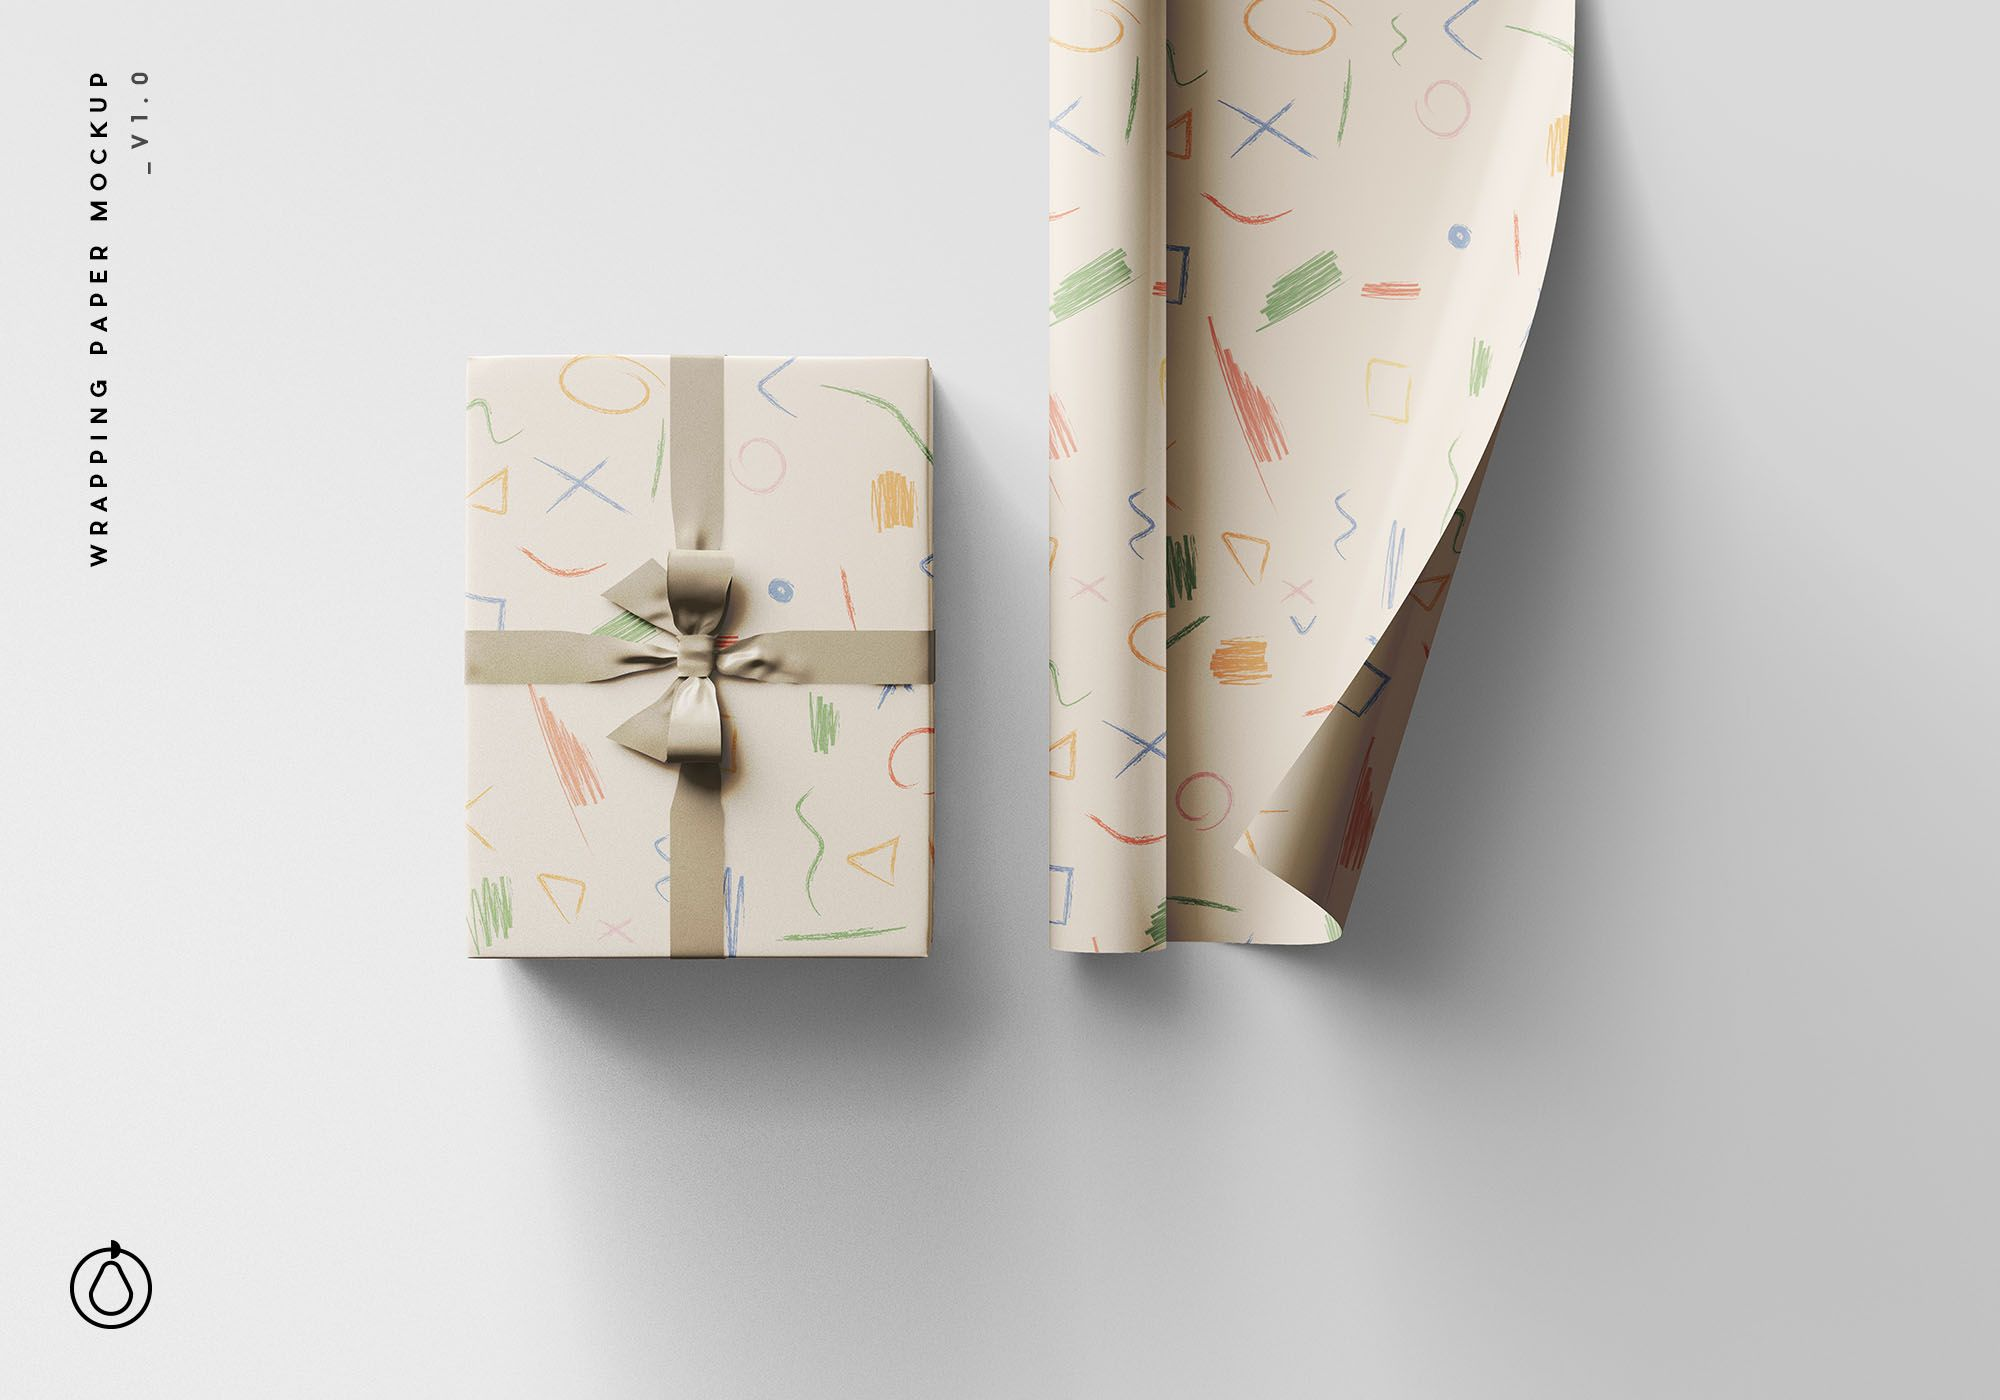 Wrapping Paper Free Psd Mockup Paper Mockup Mockup Free Psd Wrapping Paper Design